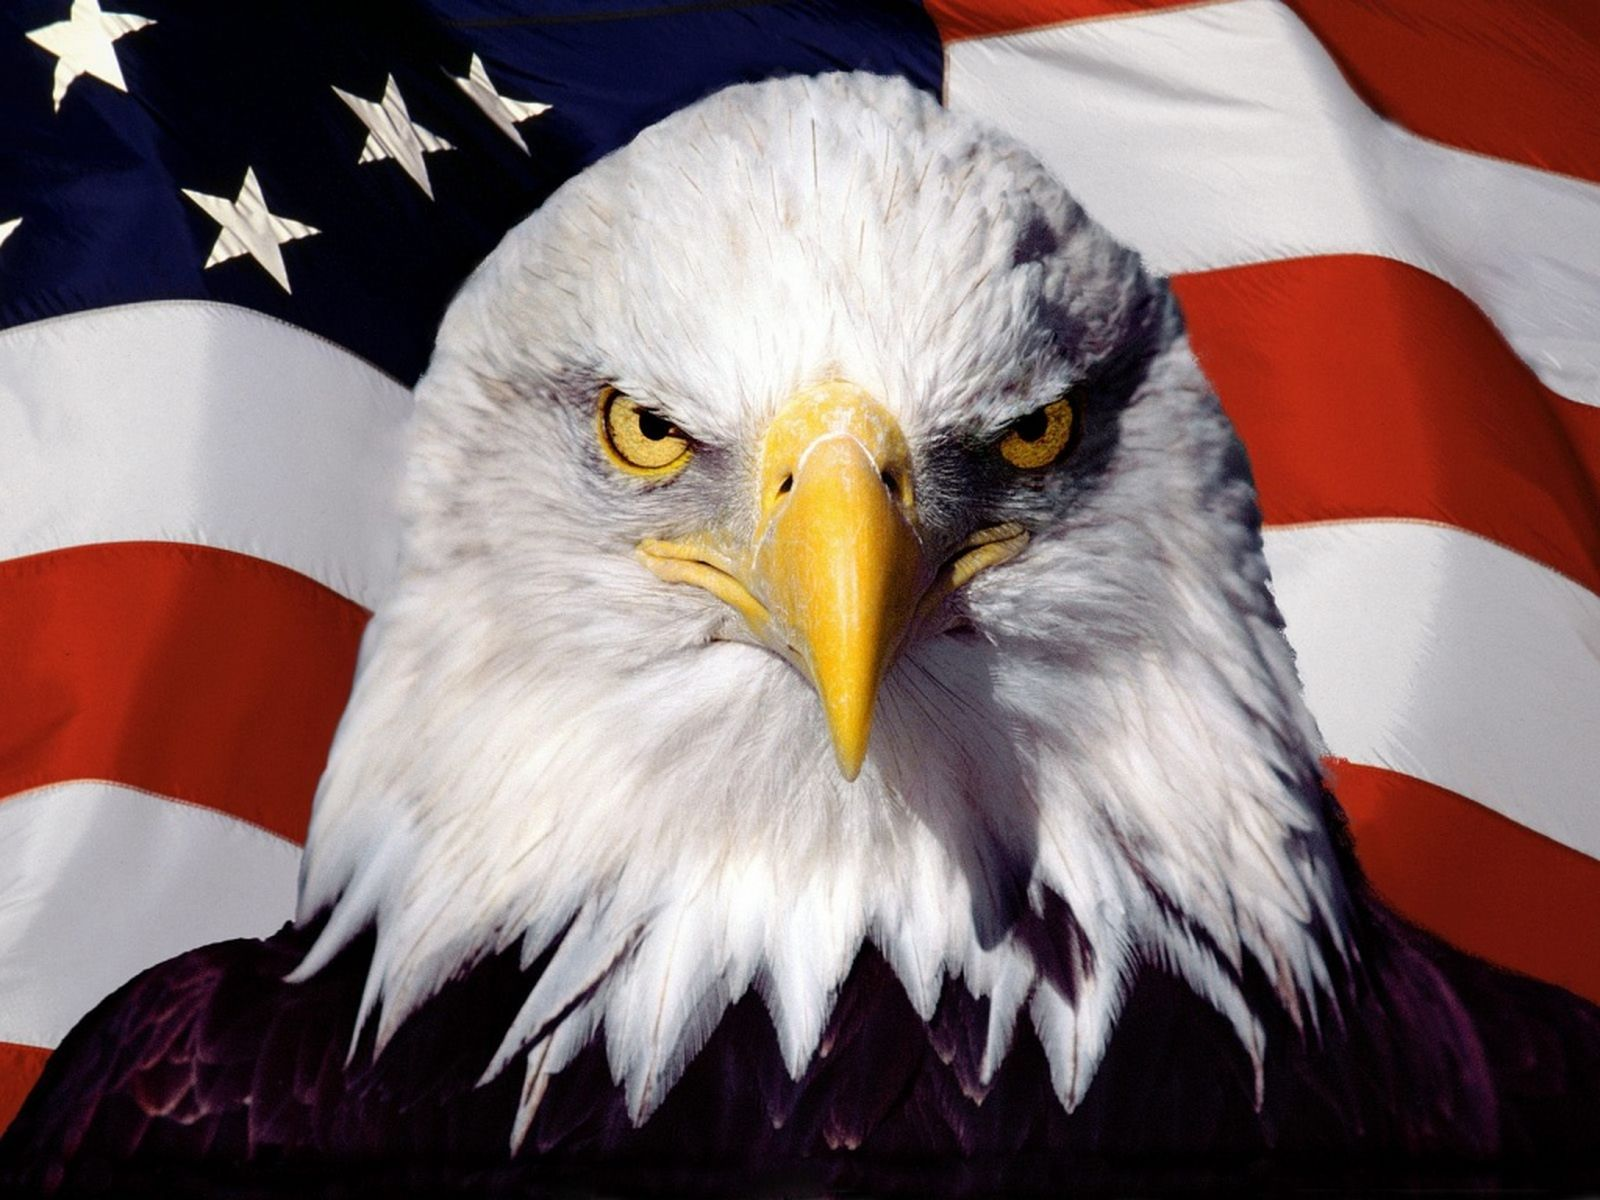 Download America wallpaper eagle americanflag wallpaper 1600x1200